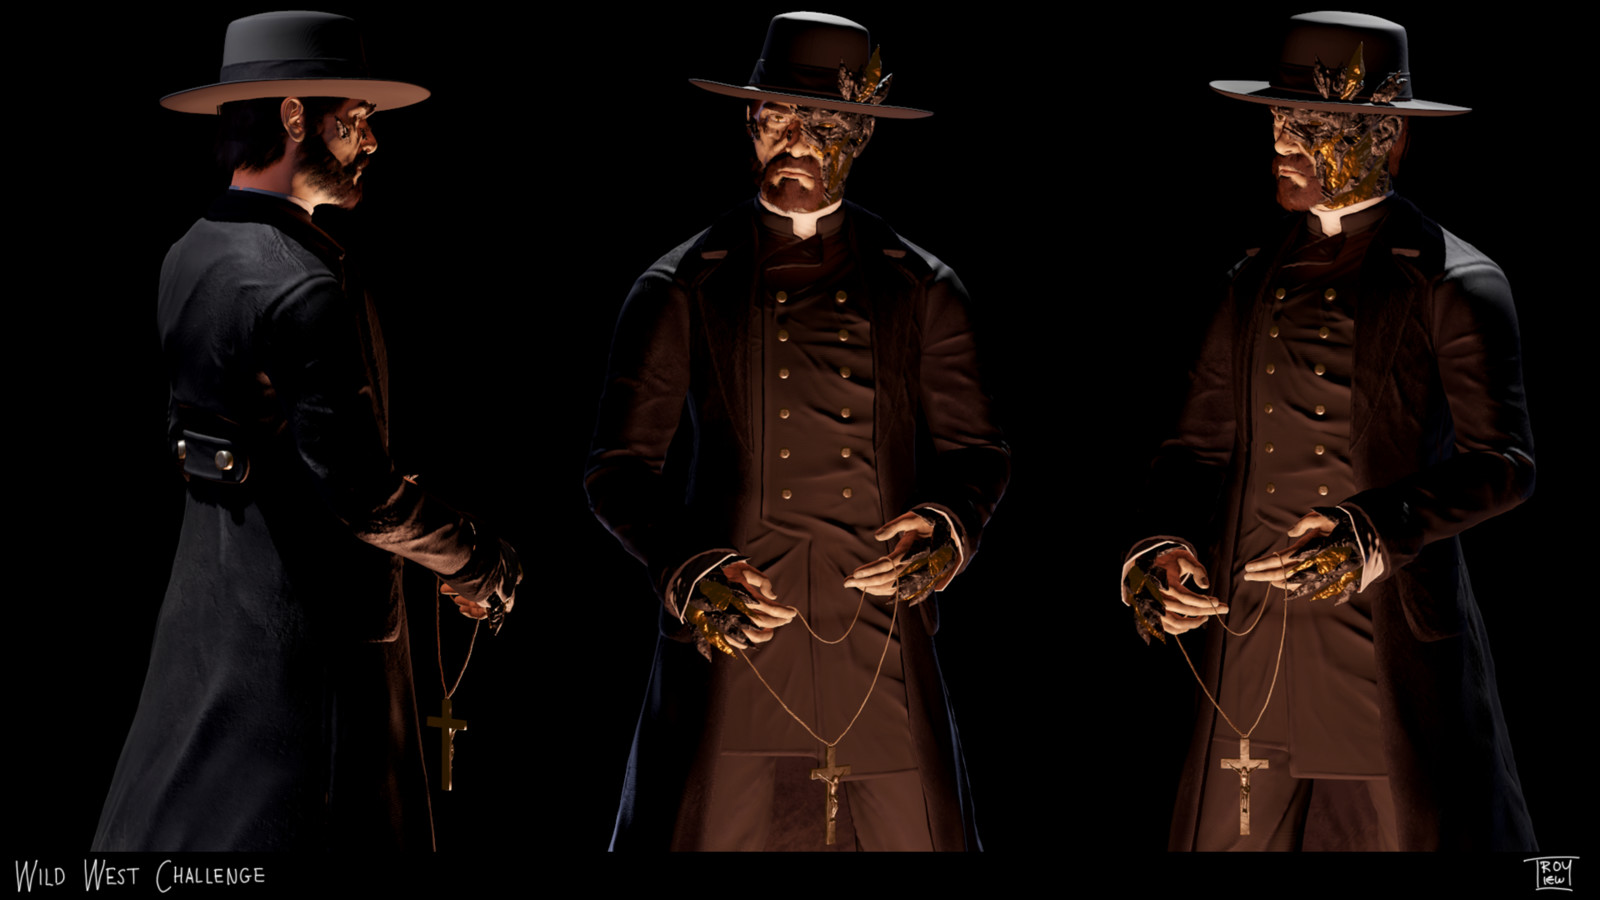 The Priest - Wild West Challenge